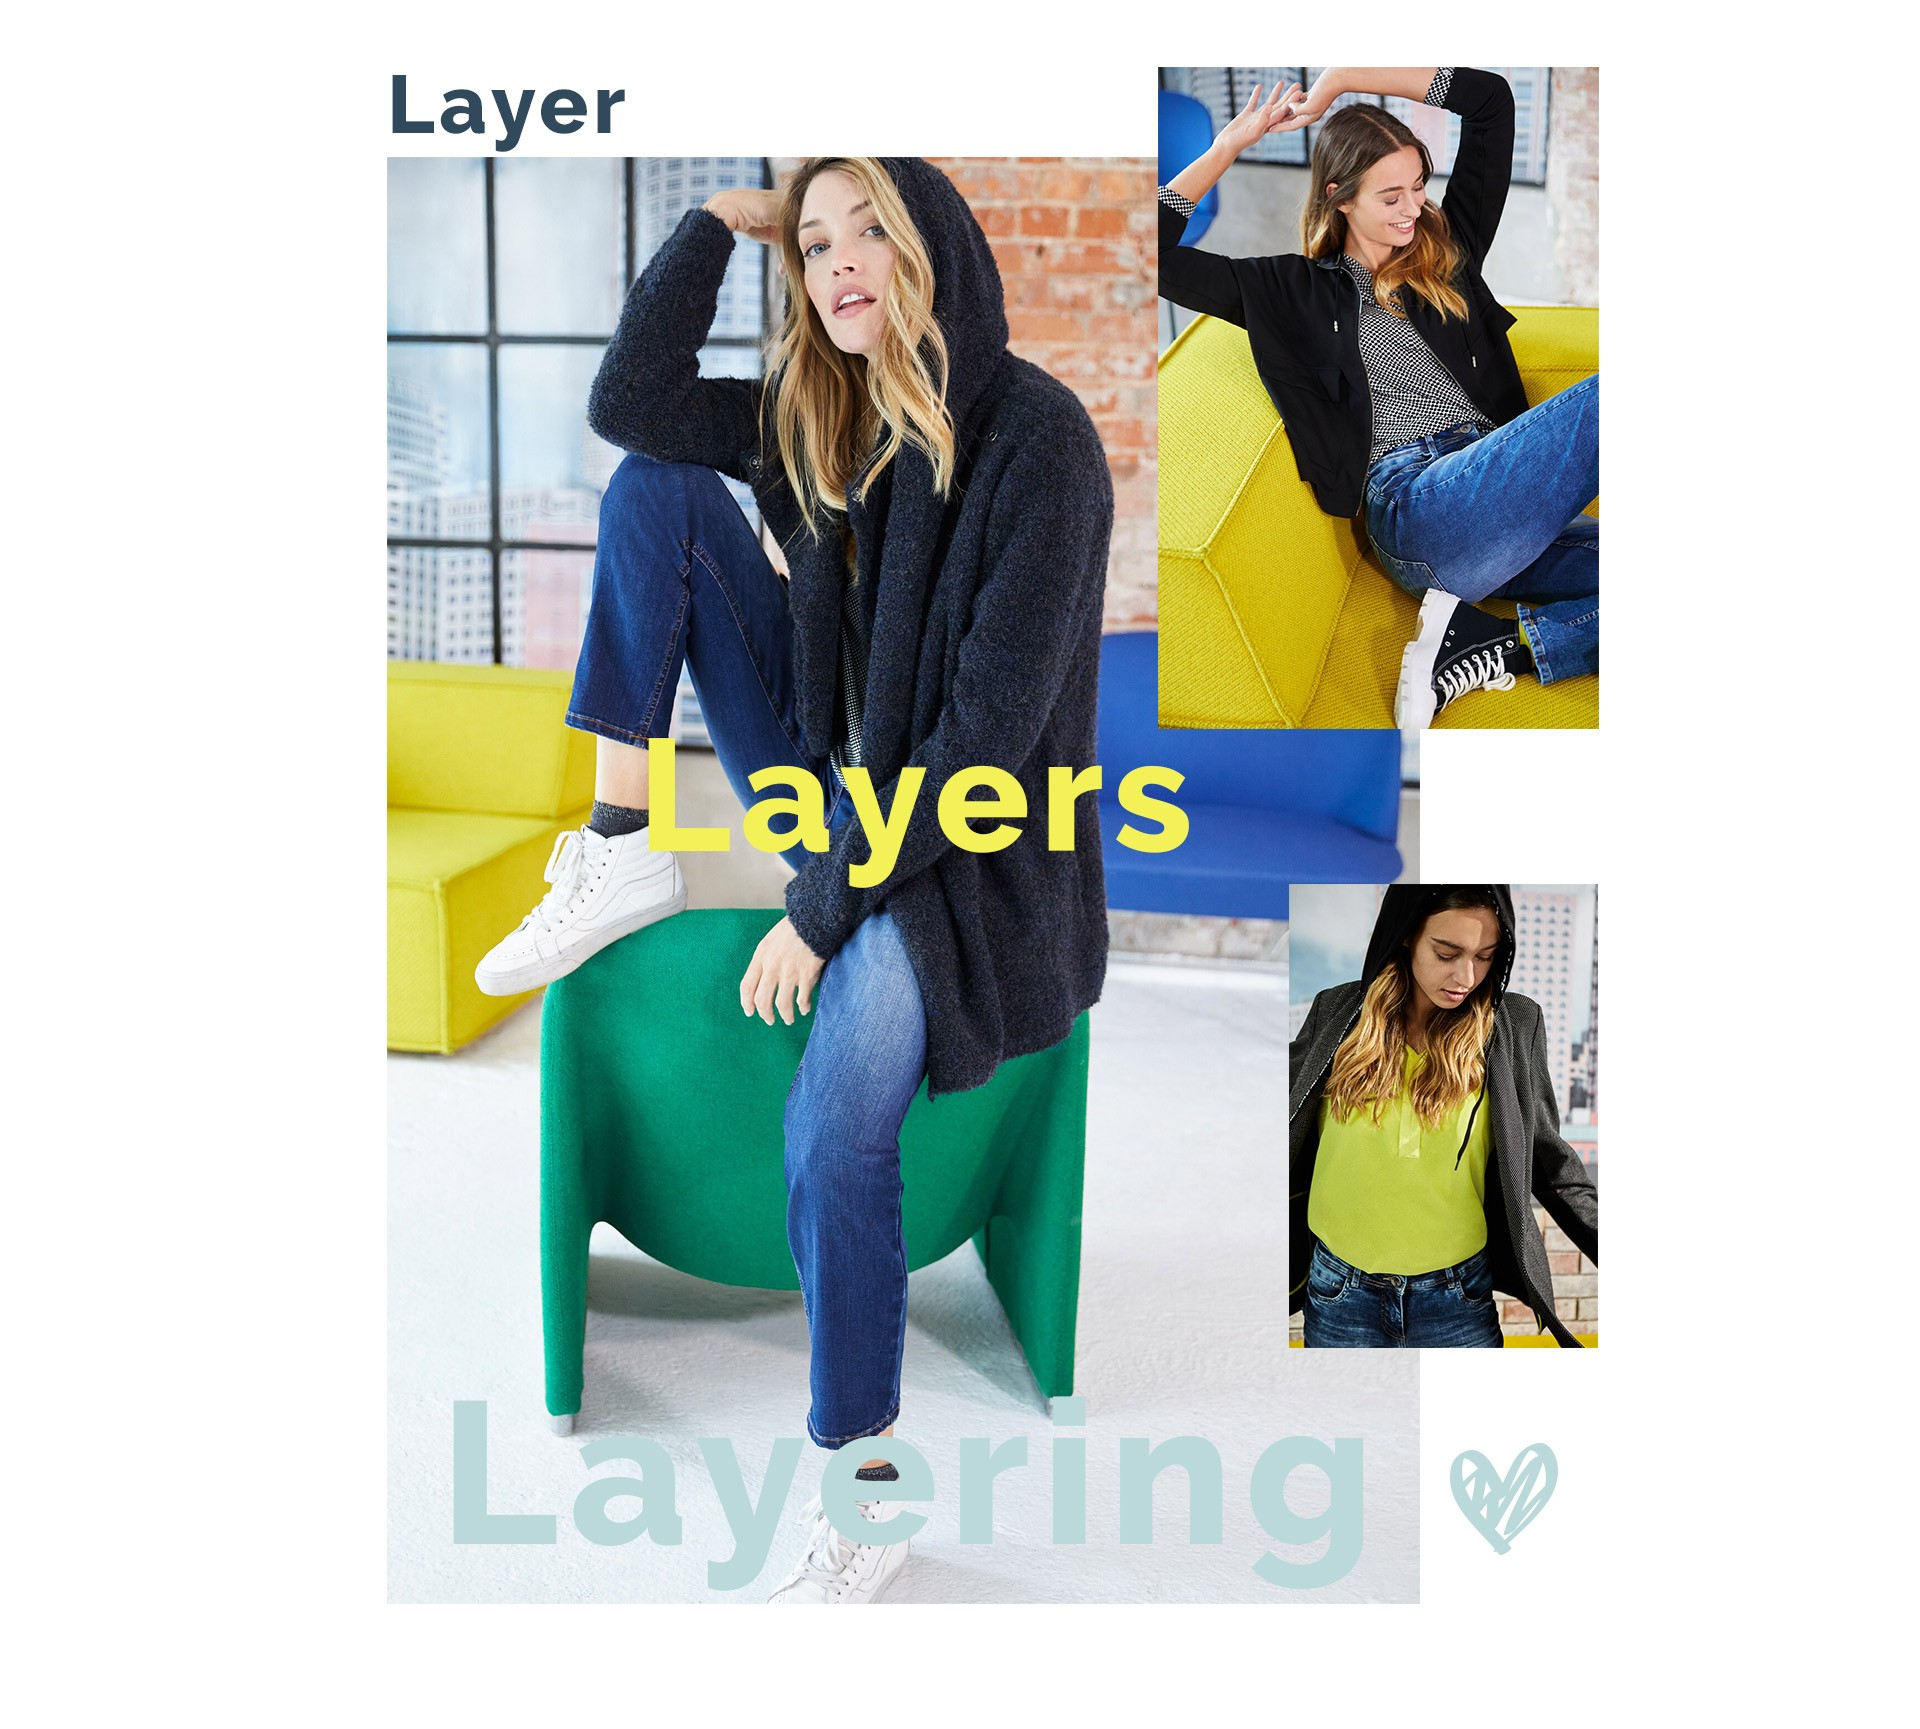 Layer, Layers, Layering